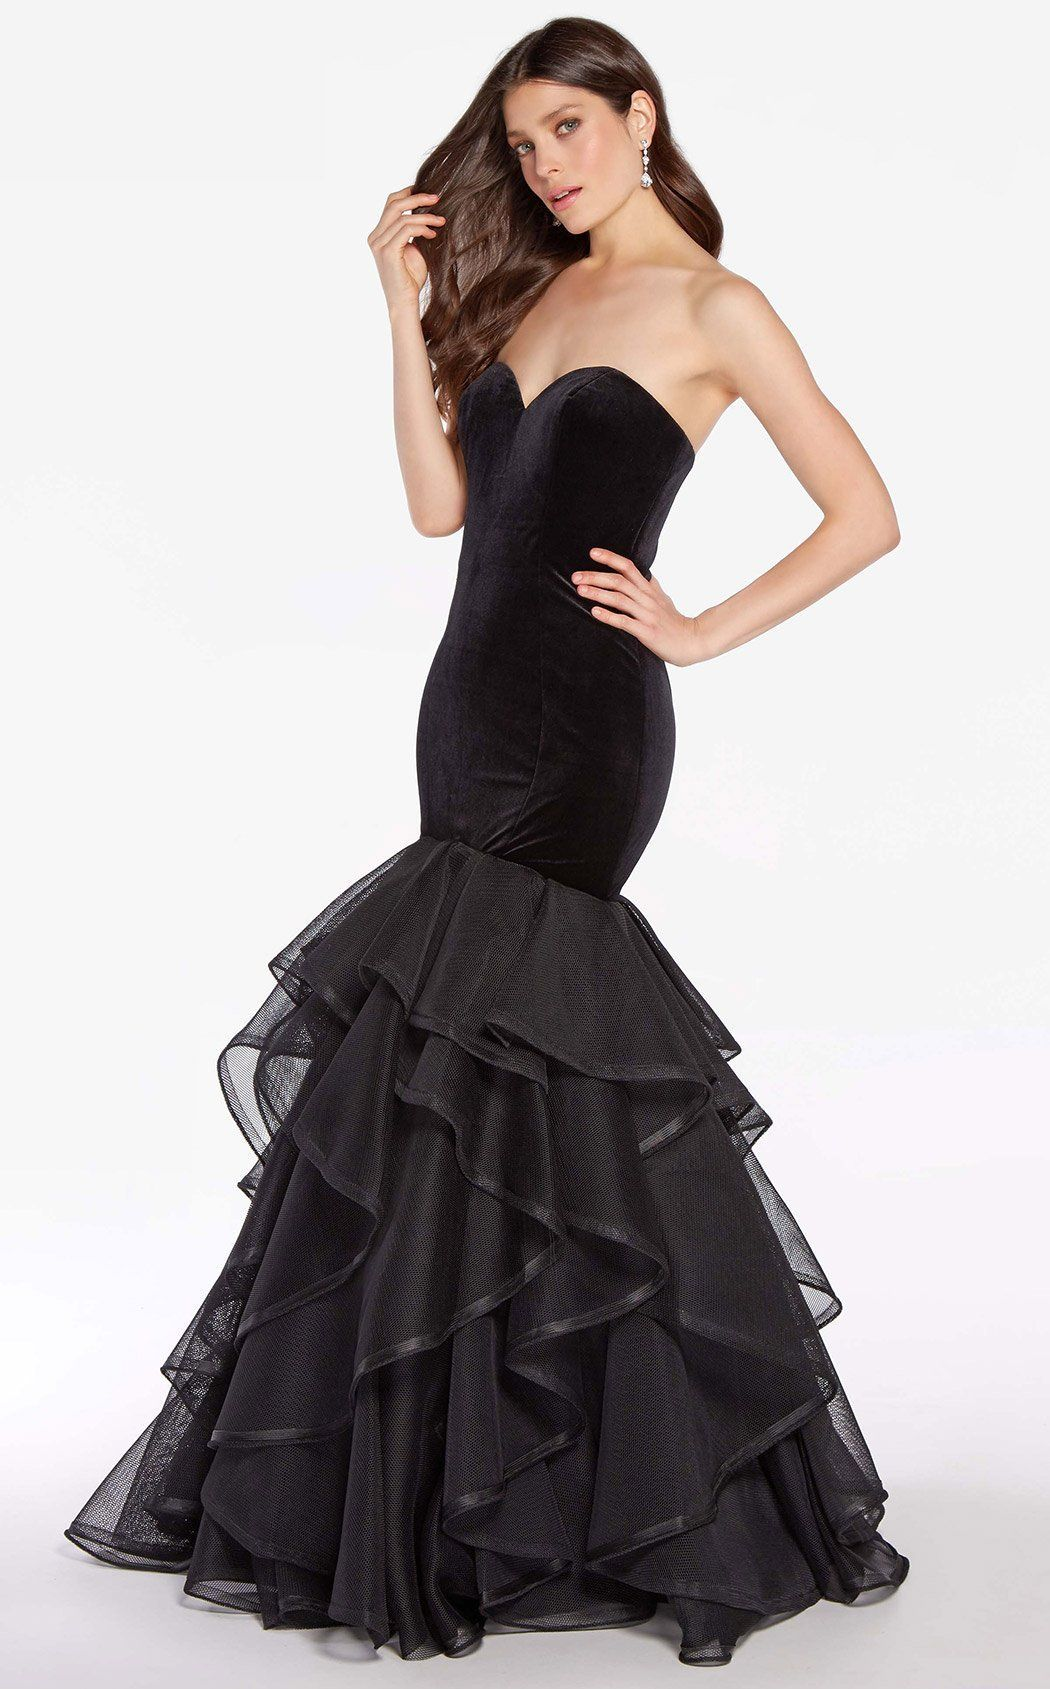 edf602291b6 ... Paris prom or formal dress from an International Prom Association  authorized retailer. Alyce 60228